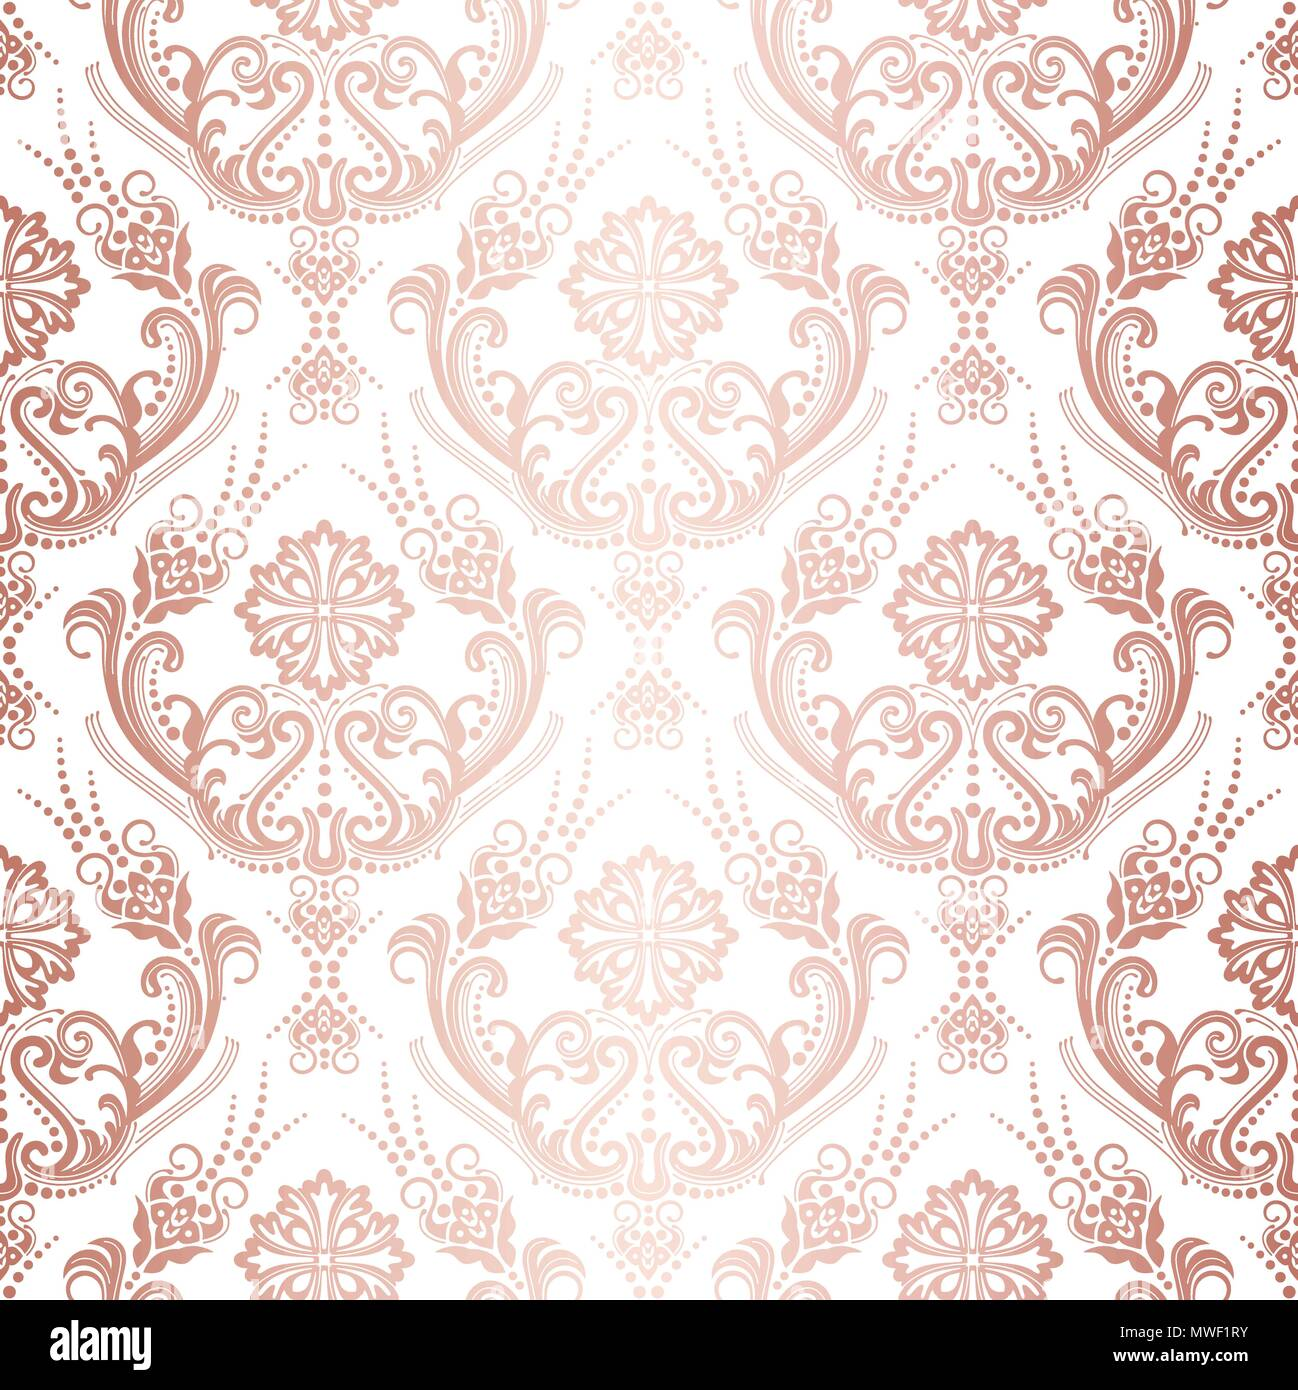 Luxury Rose Gold Floral Damask Wallpaper Isolated Pattern This